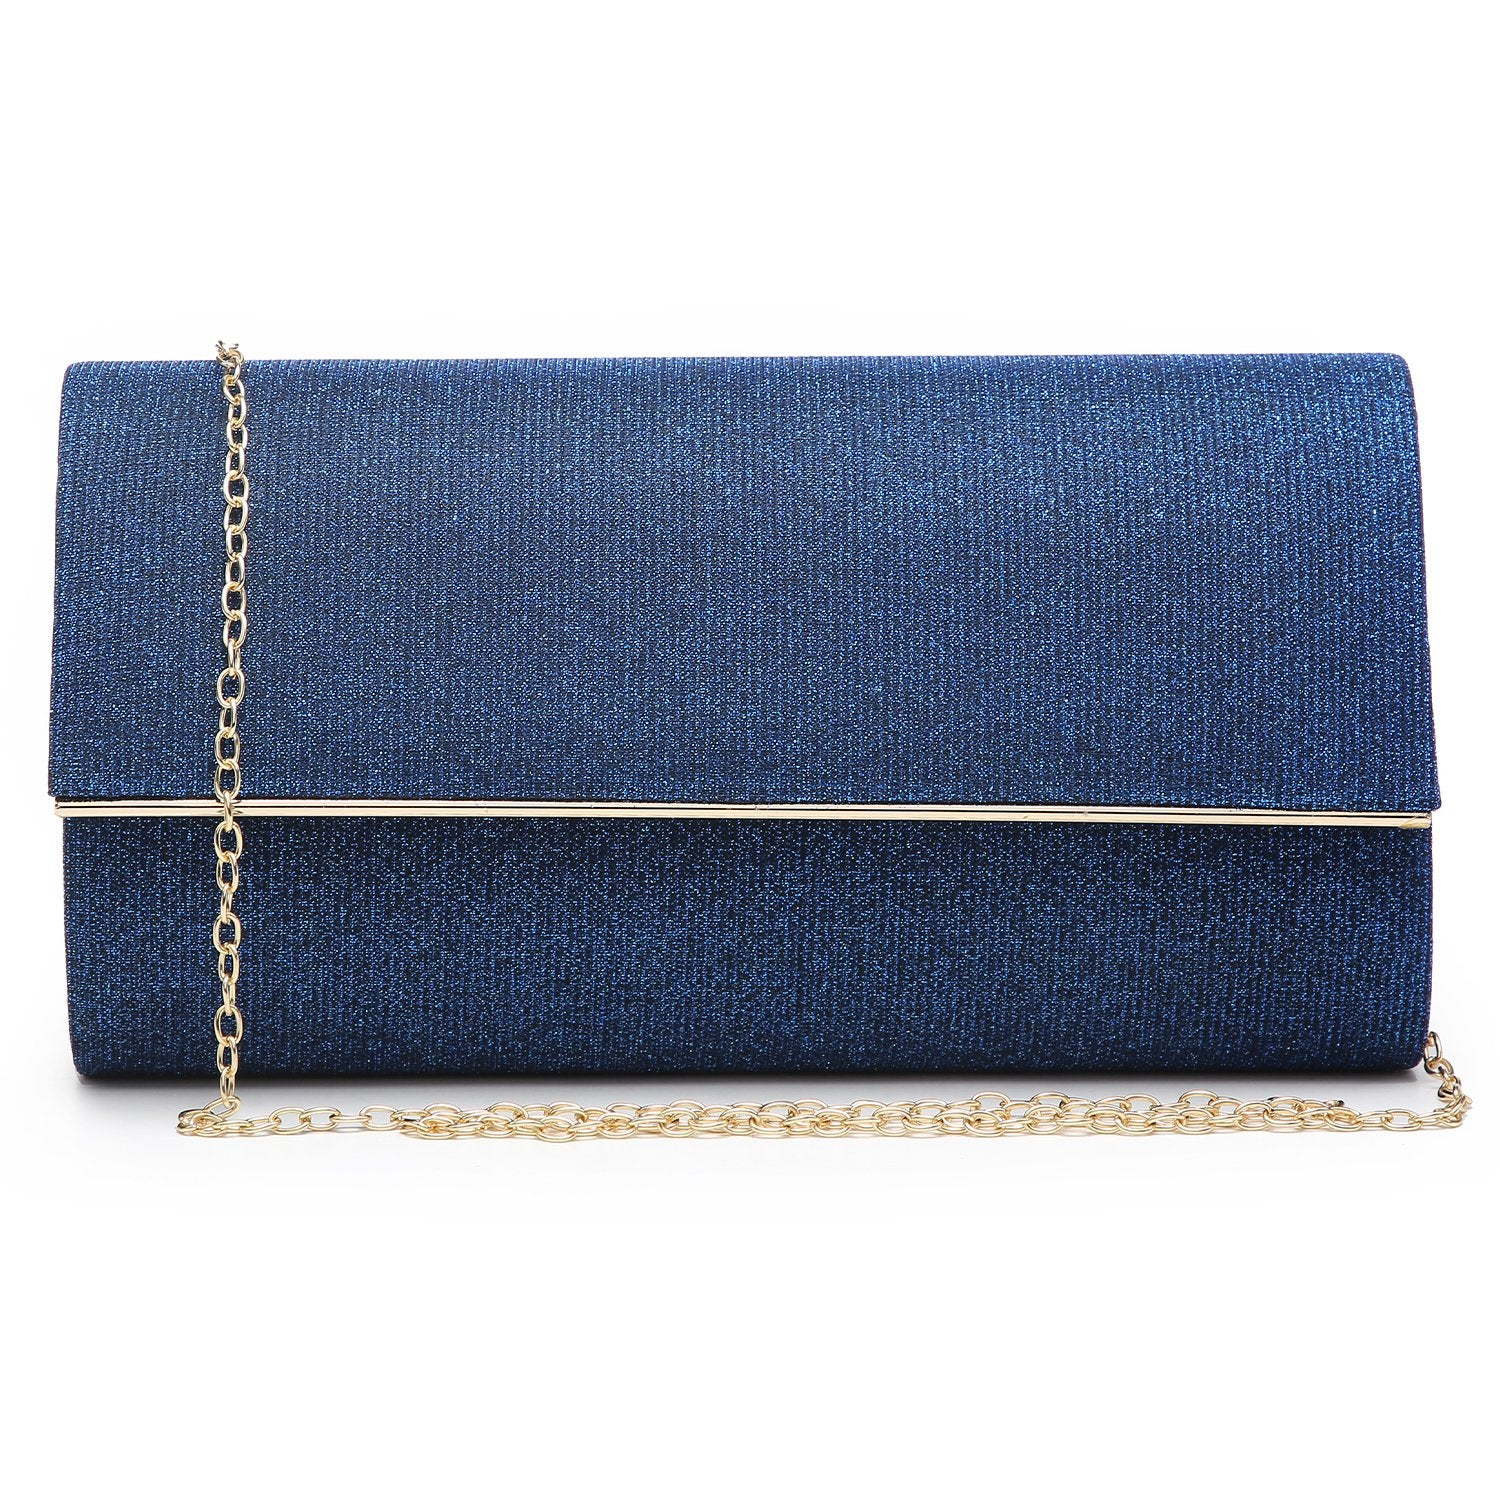 Glitter Gold Trim Evening Clutch-Handbags & Purses-Dasein Bags